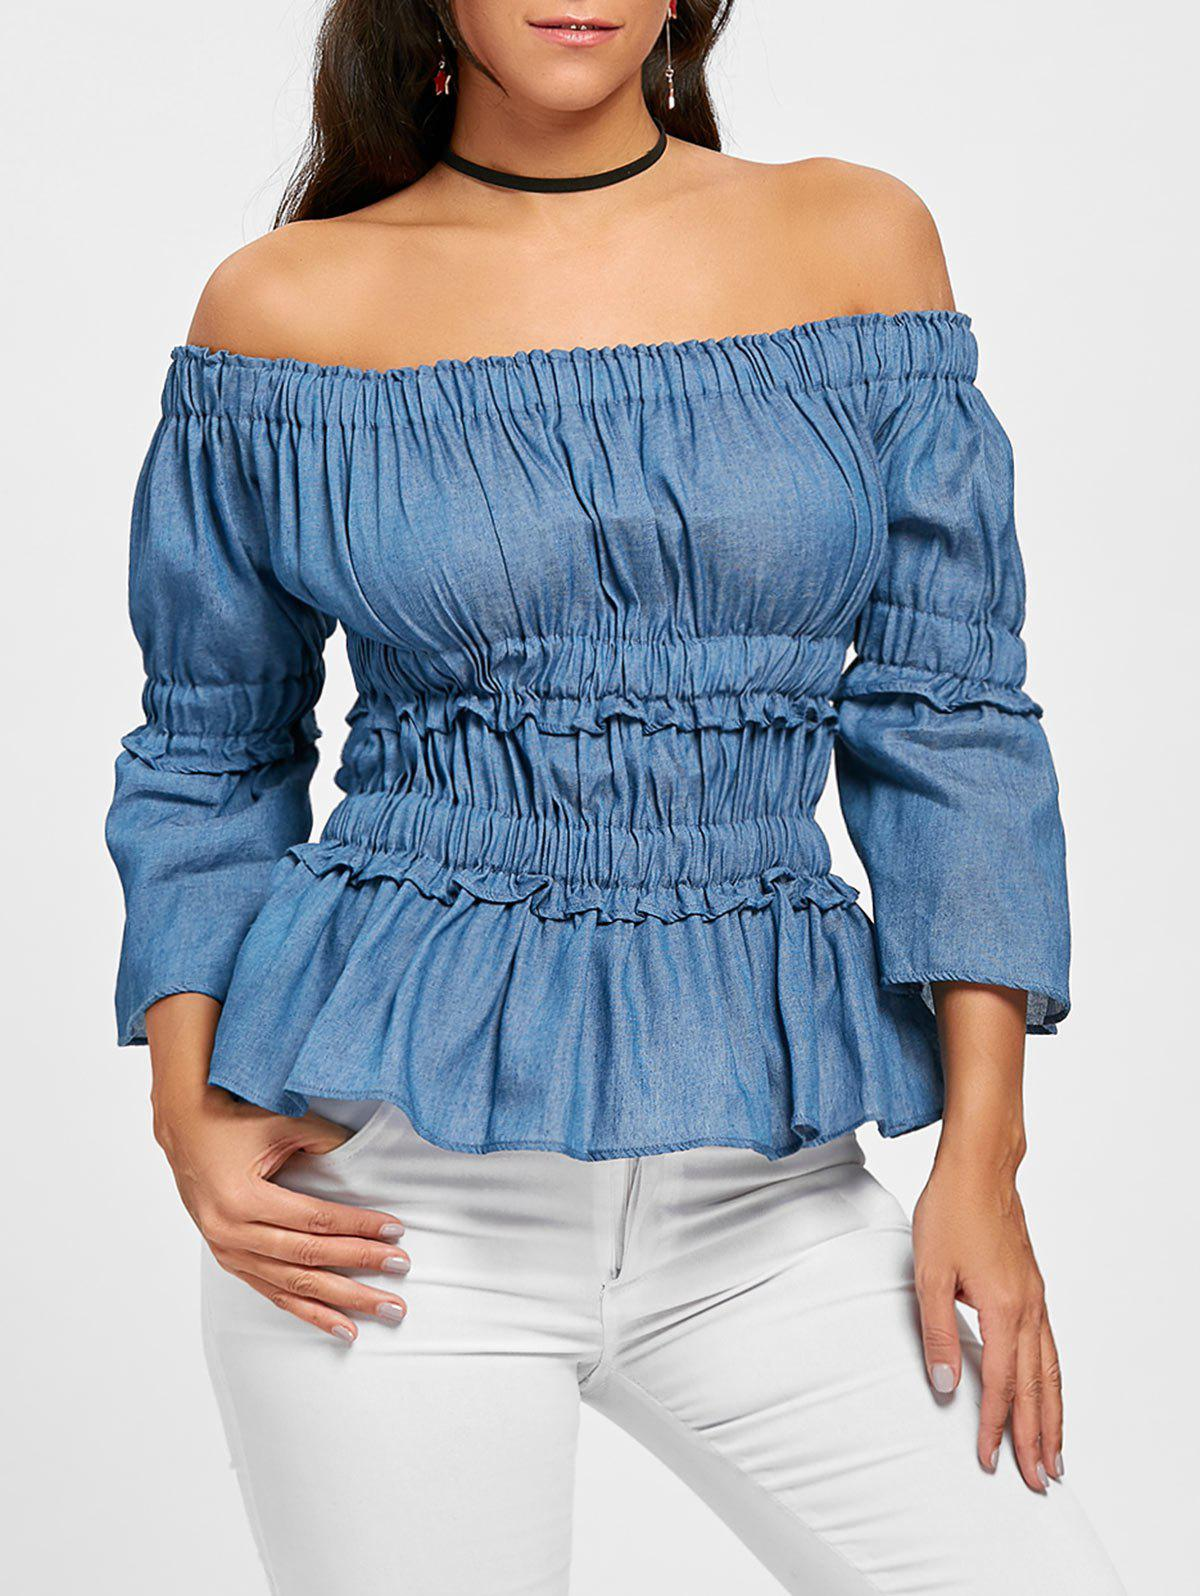 Ruched Off The Shoulder Denim Top mesh open shoulder side ruched lattice top